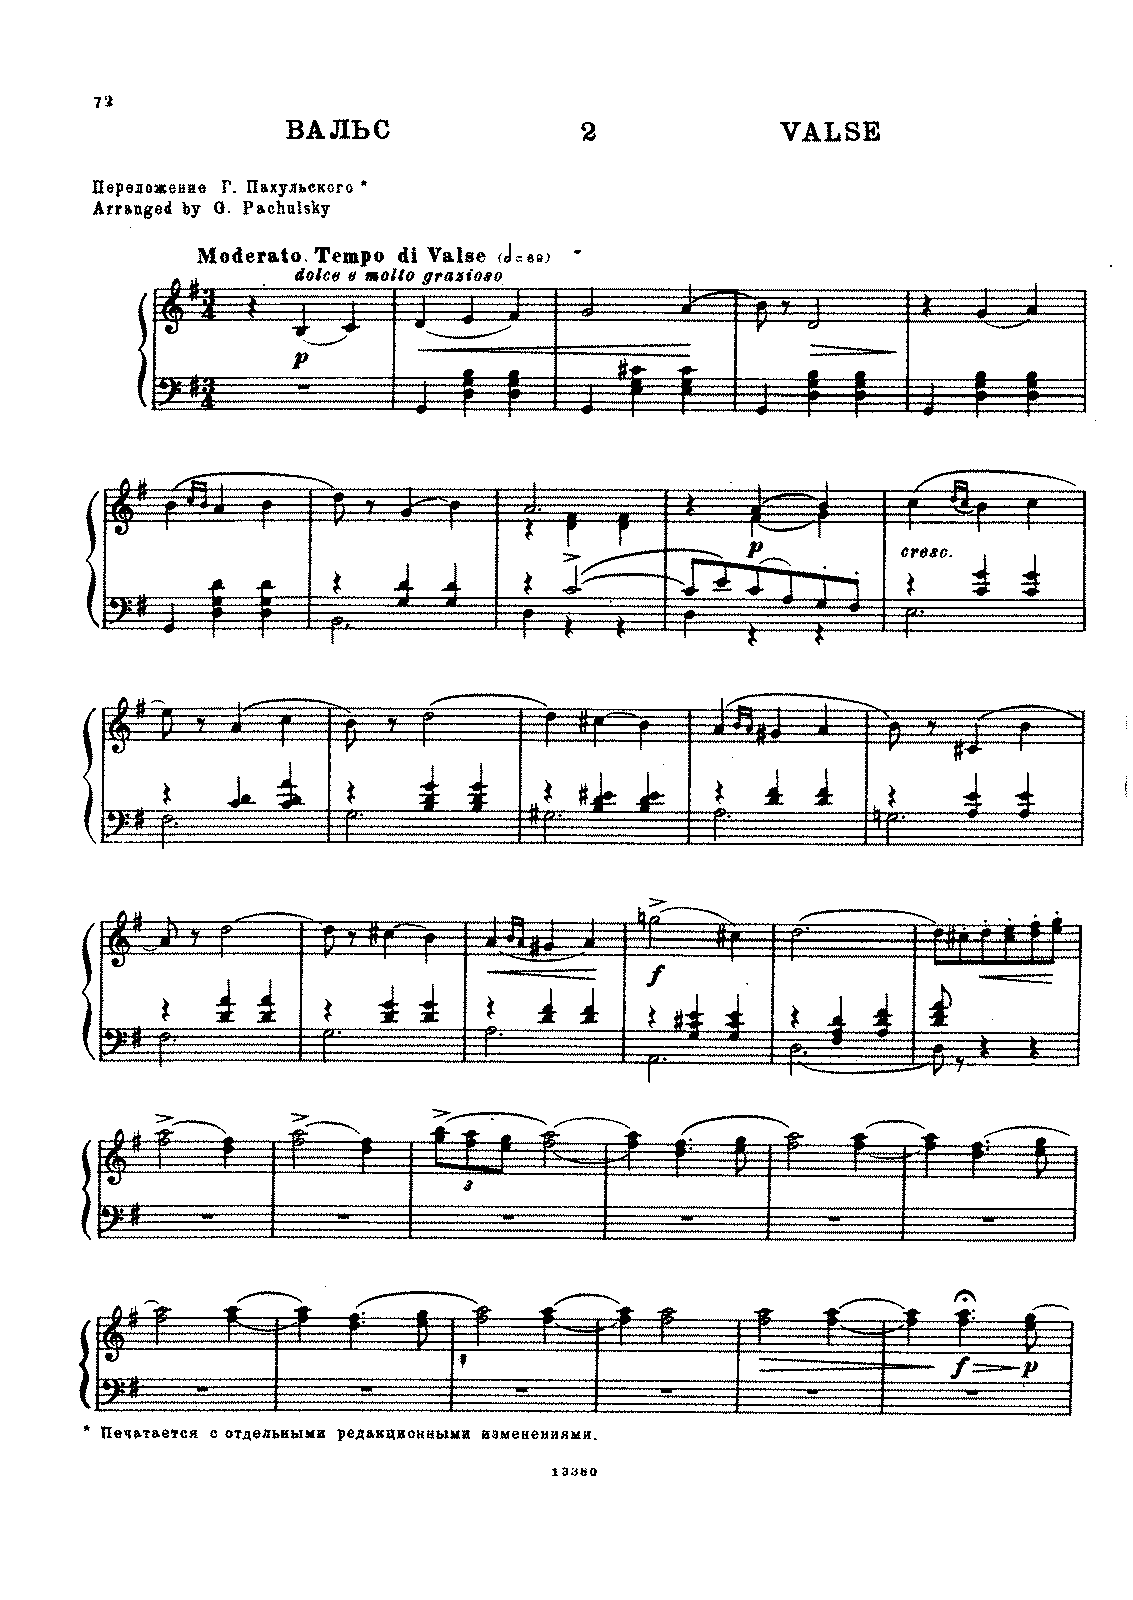 Tchaikovsky - Serenade for String Orchestra - II. Valse (Arr. for piano by G. Pachulsky).pdf